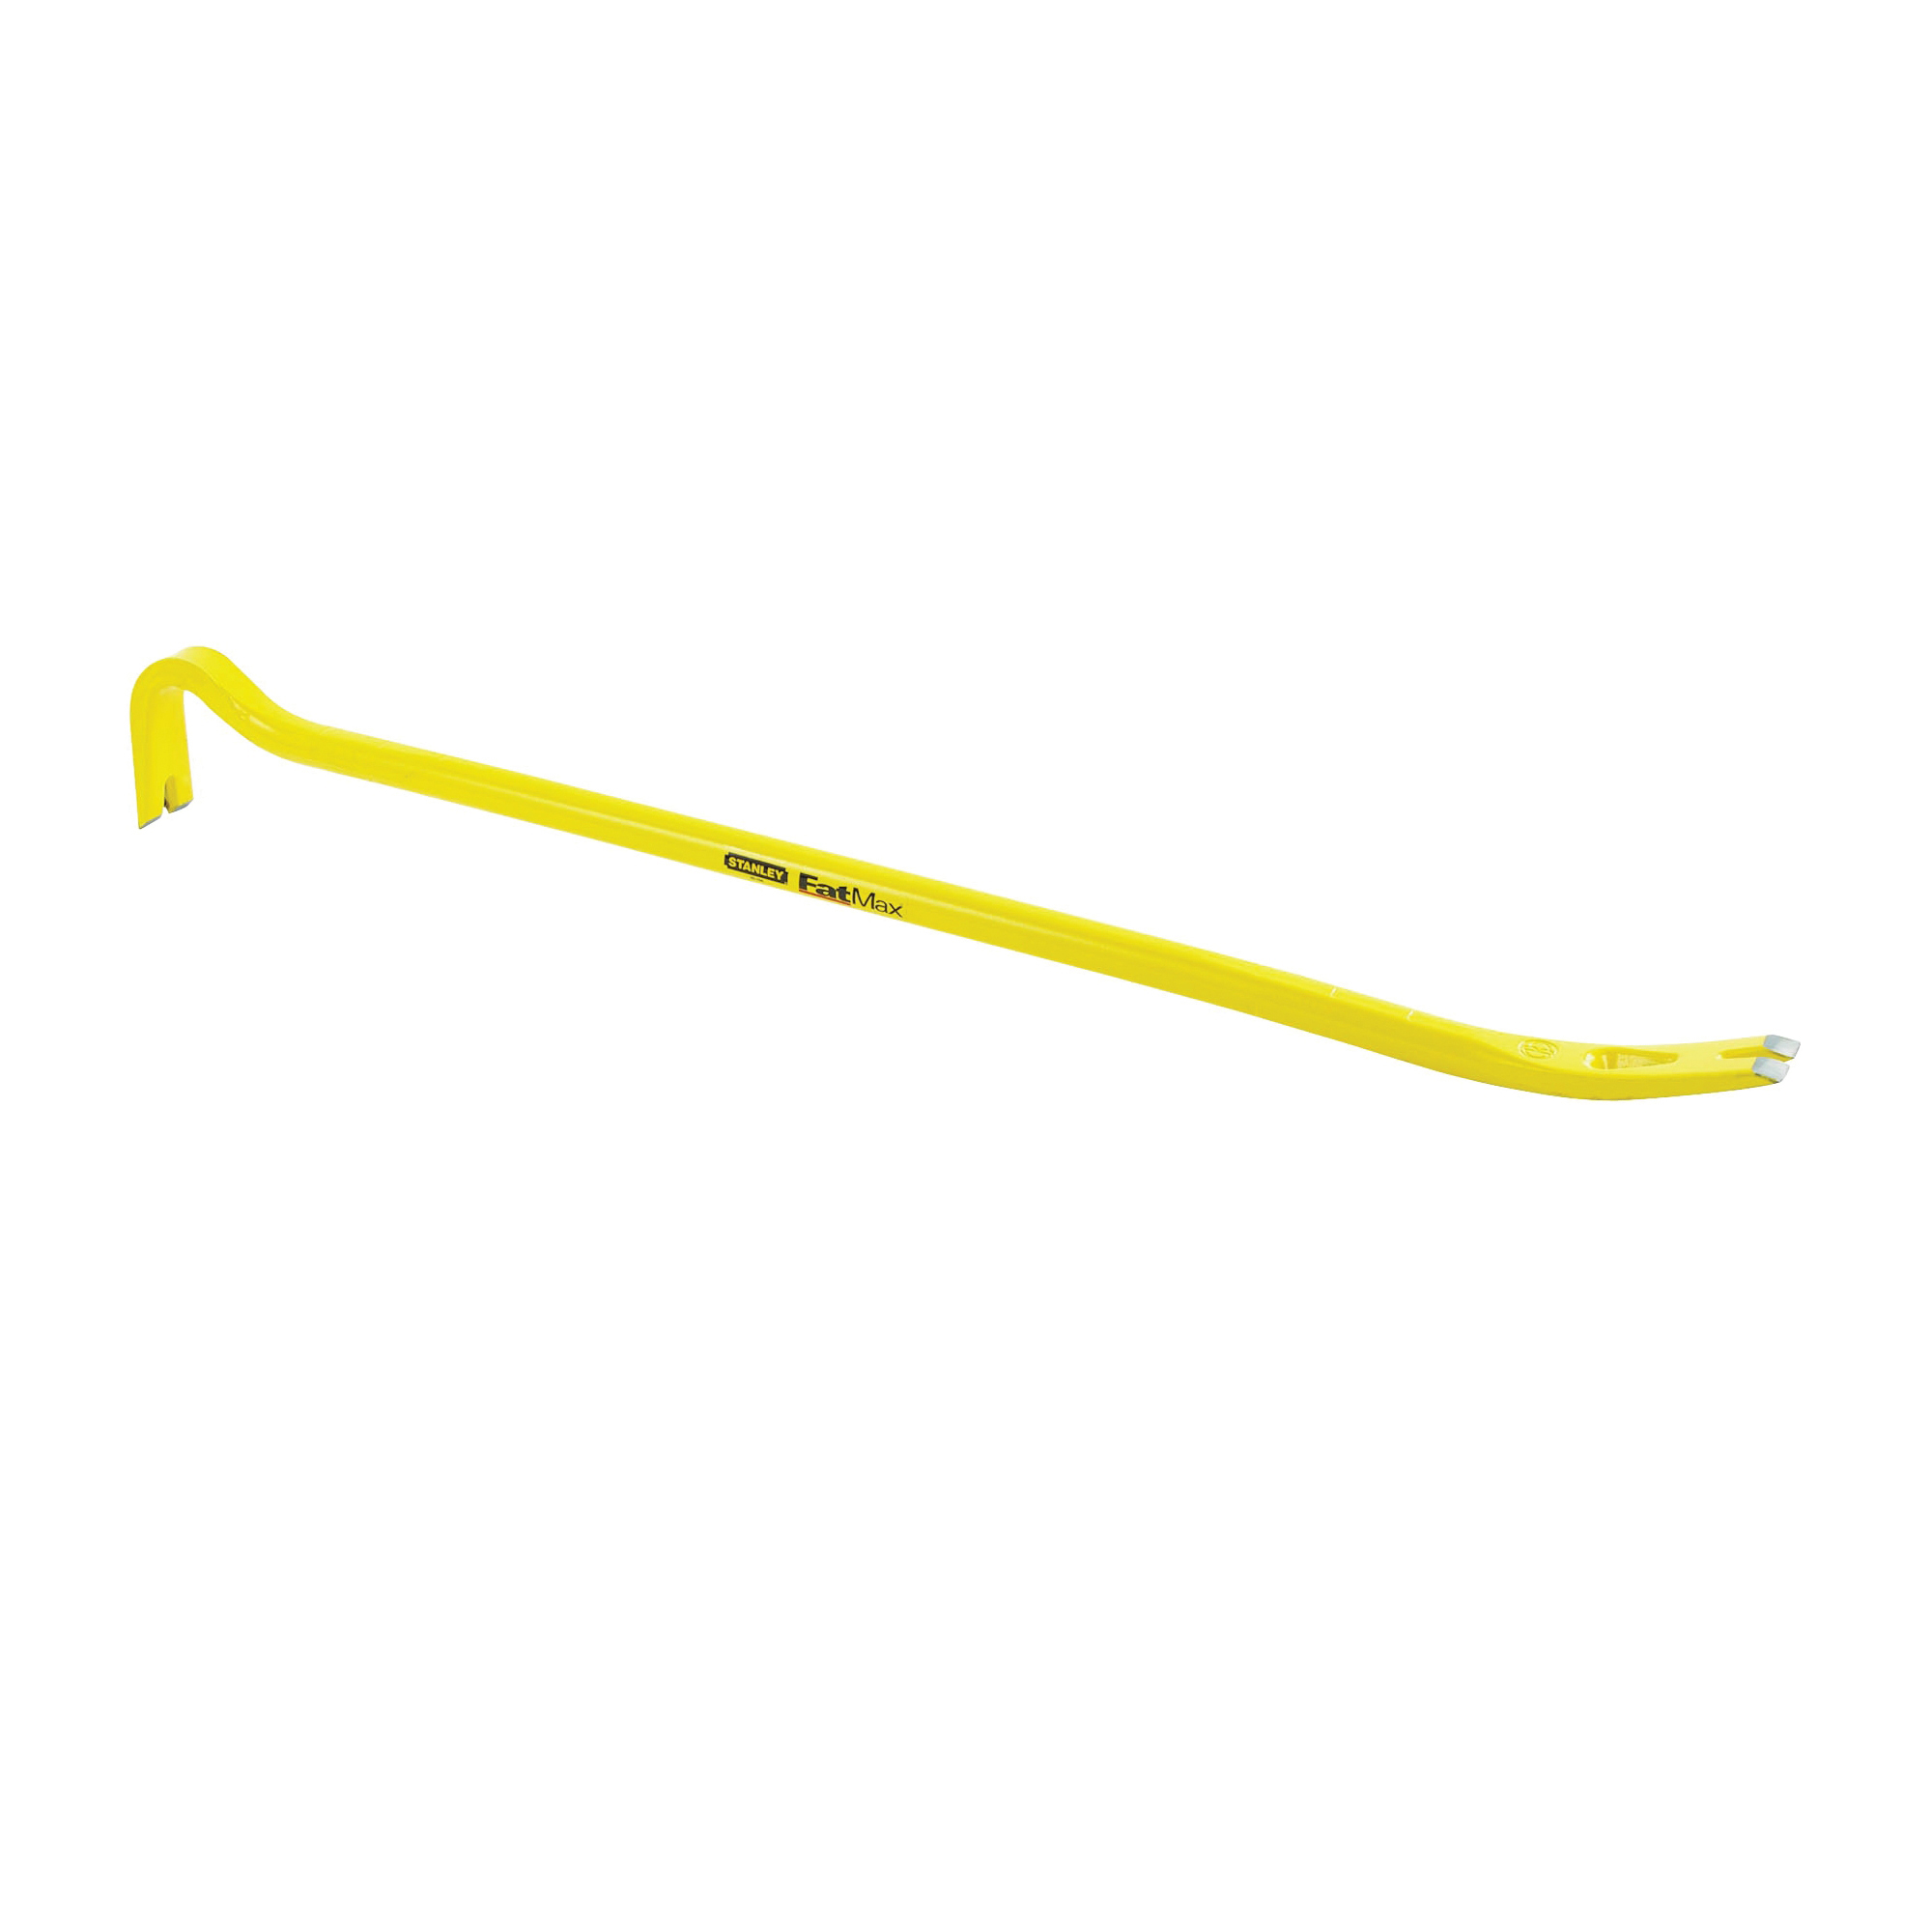 Picture of STANLEY 55-104 Wrecking Bar, 36 in L, Beveled/Slotted Tip, 2 in Claw Blade Width 1, 1-3/4 in Claw Blade Width 2 Tip